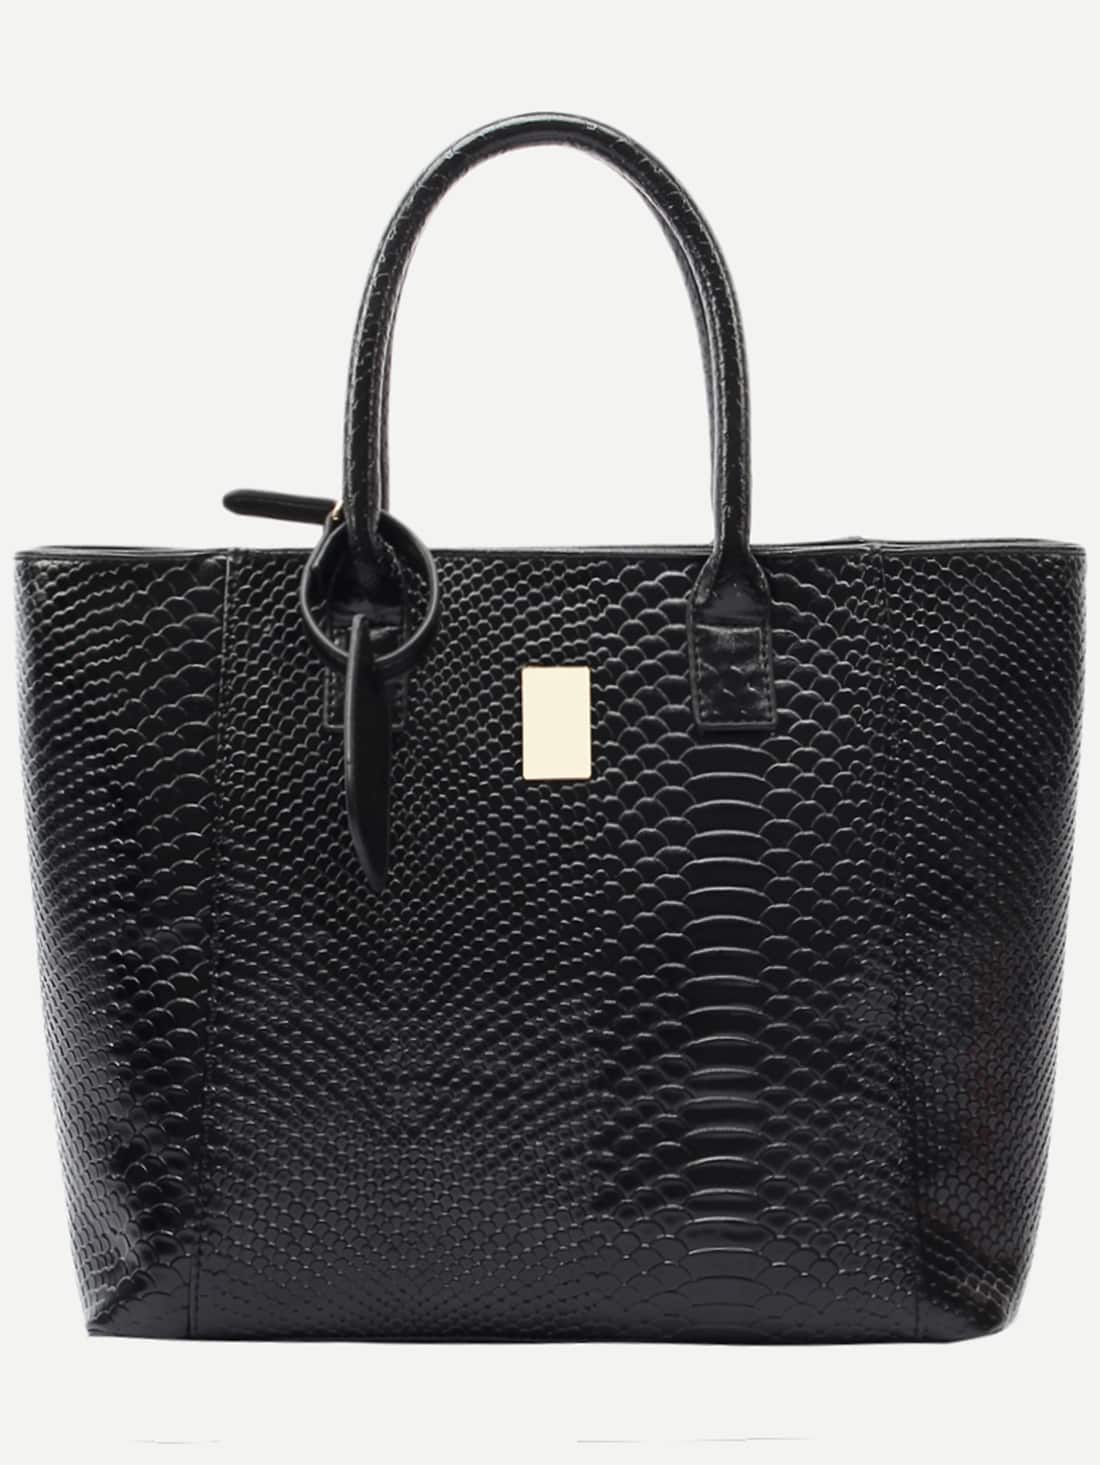 Black Crocodile Embossed Faux Leather Shopper Bag